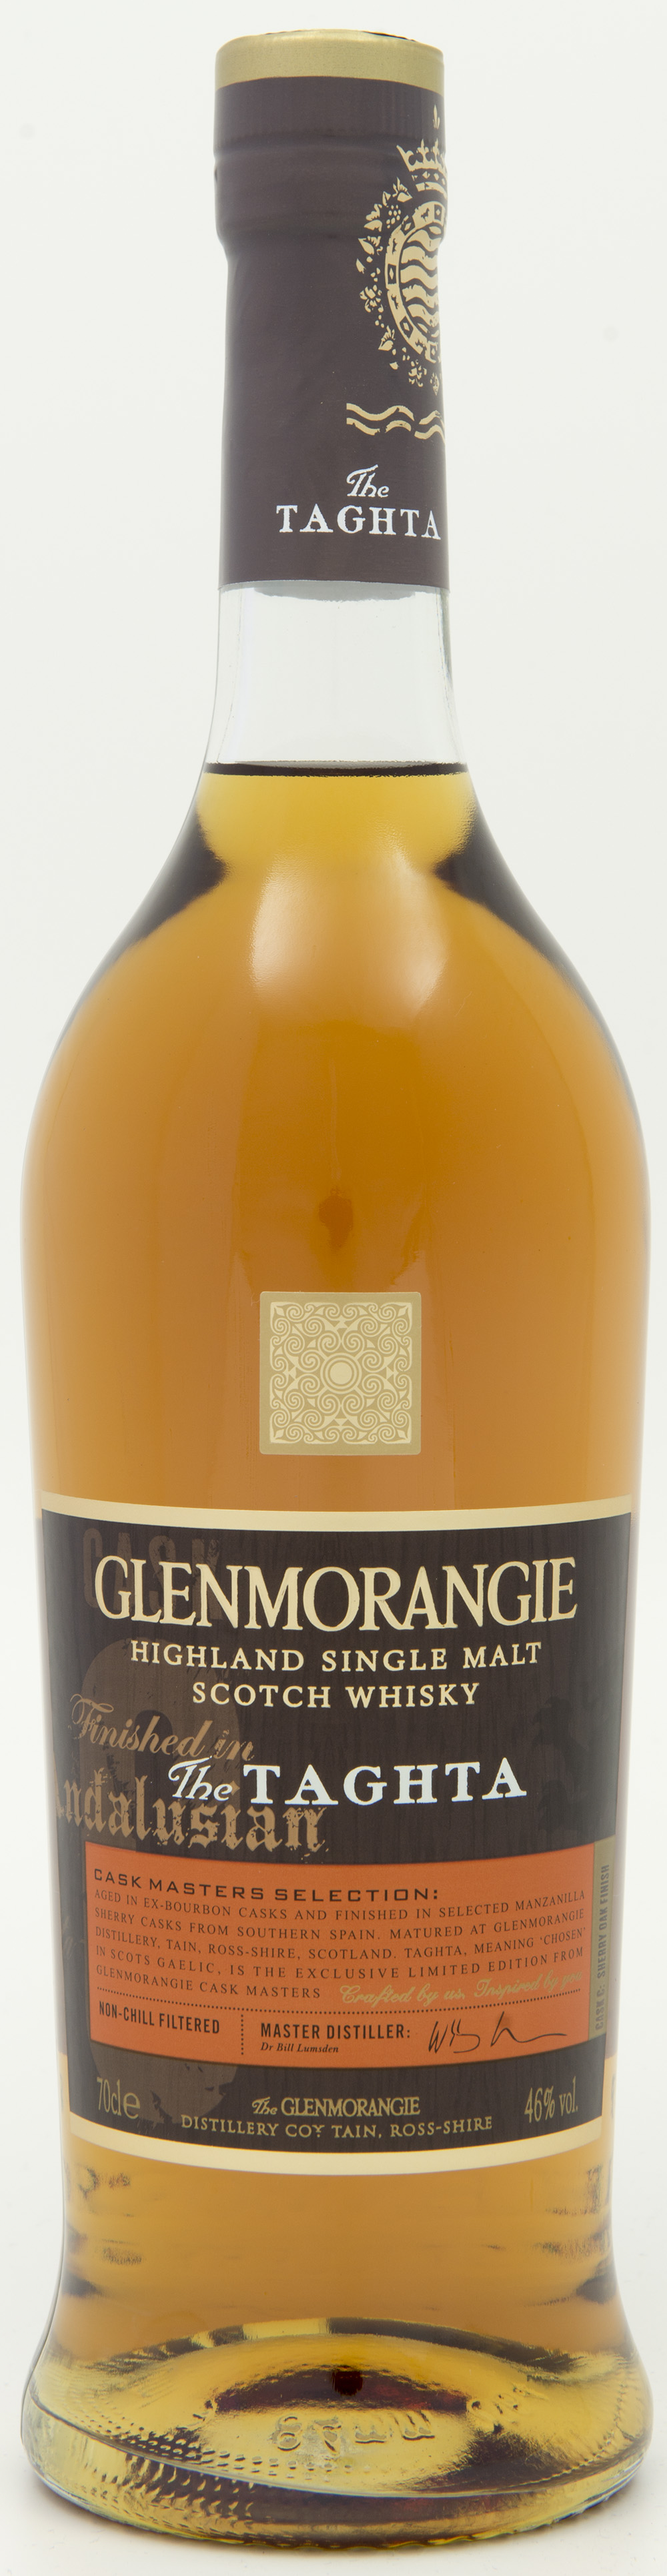 Billede: DSC_8191 - Glenmorangie The Taghta - bottle front.jpg